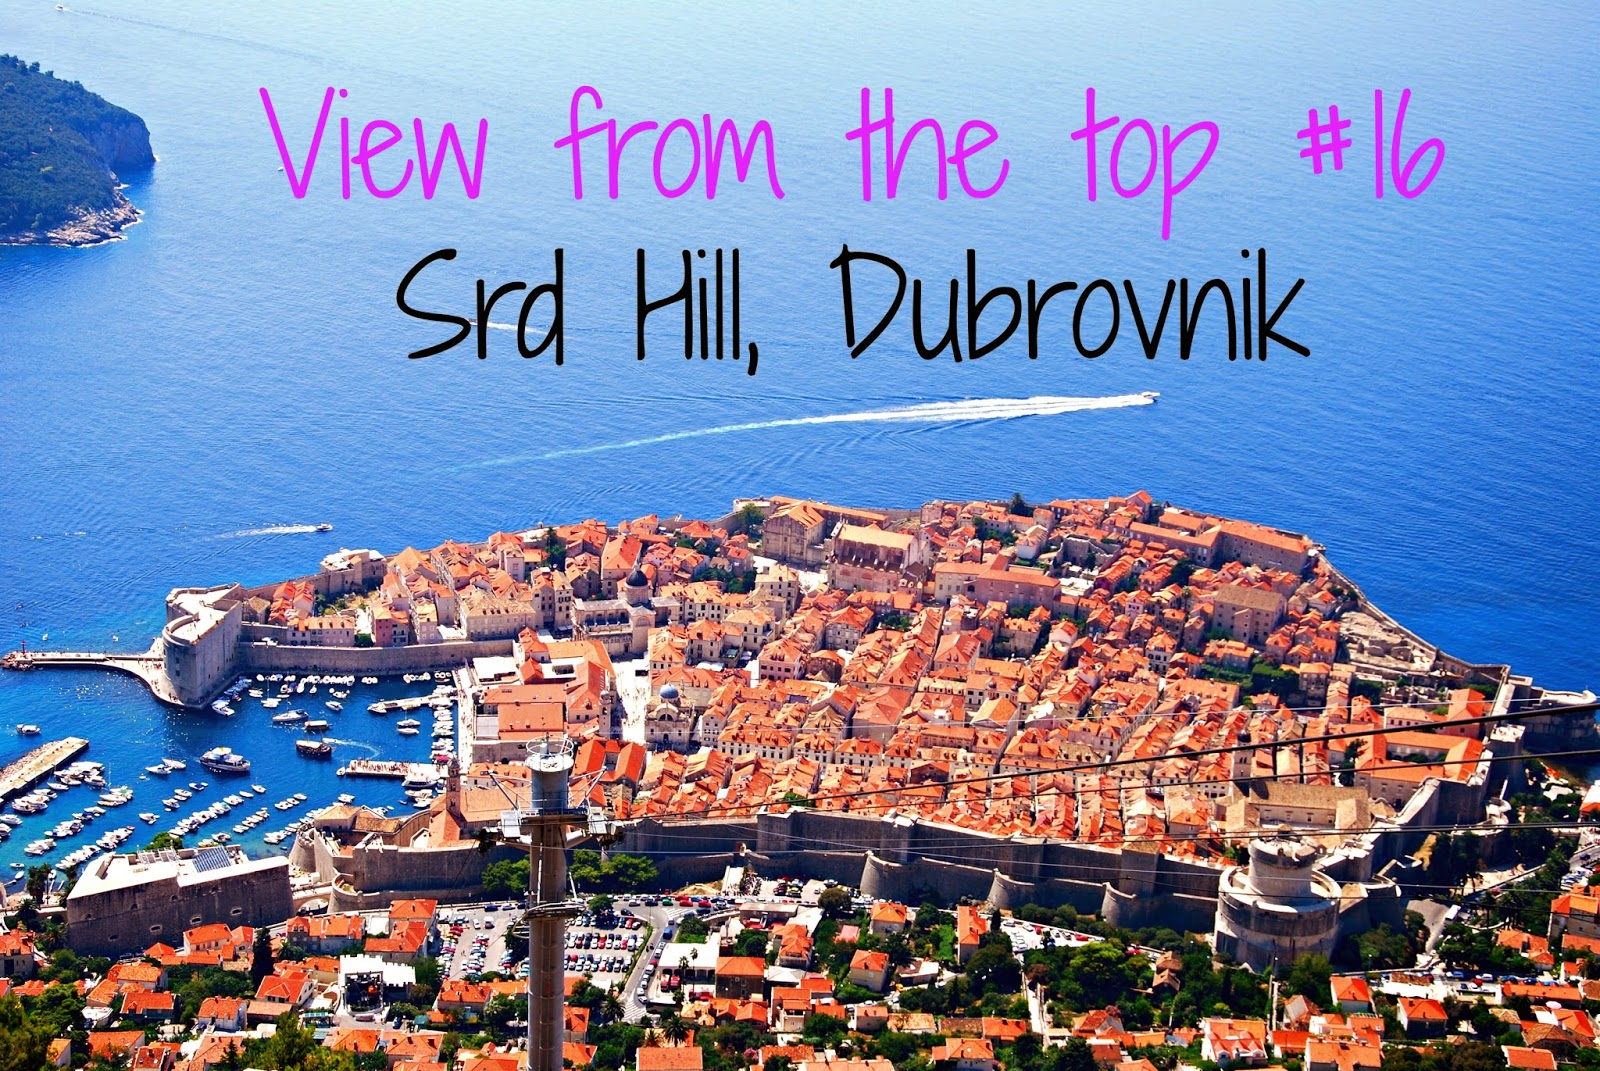 View from the top #16 Srd Hill Dubrovnik